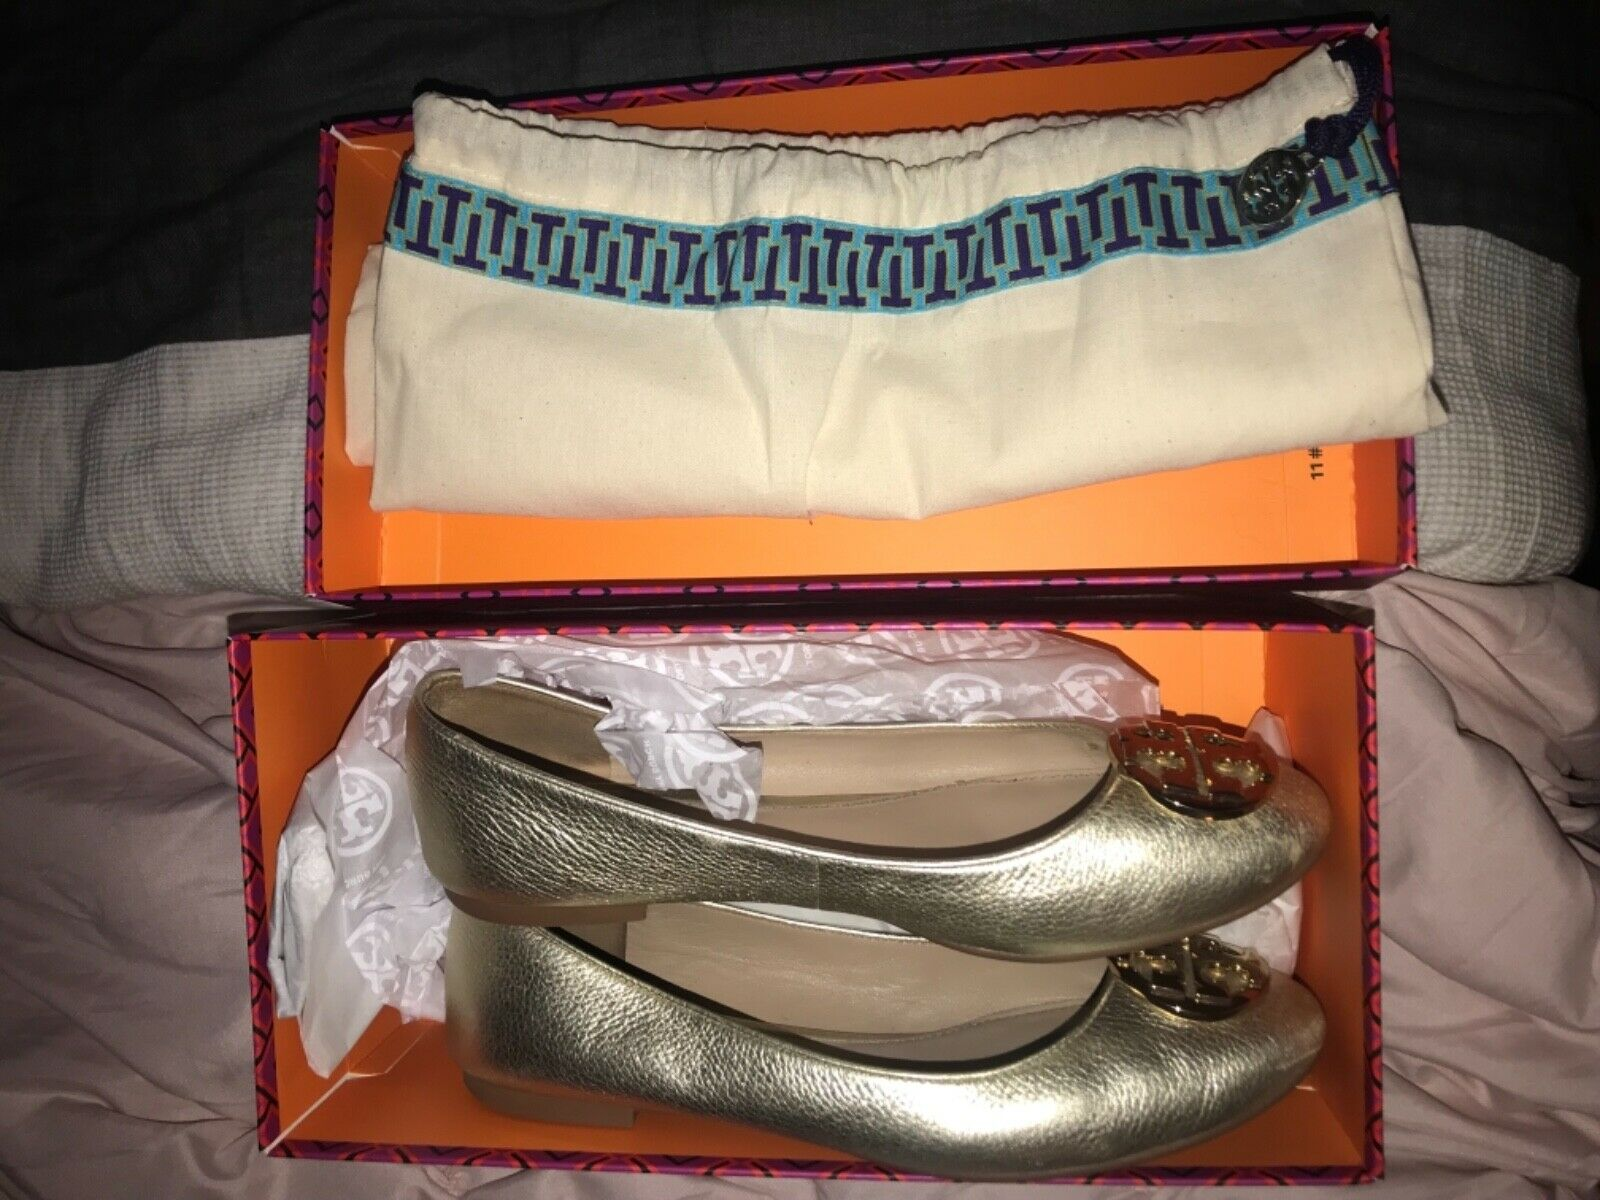 Tory Burch Claire Ballerina Flat - image 6